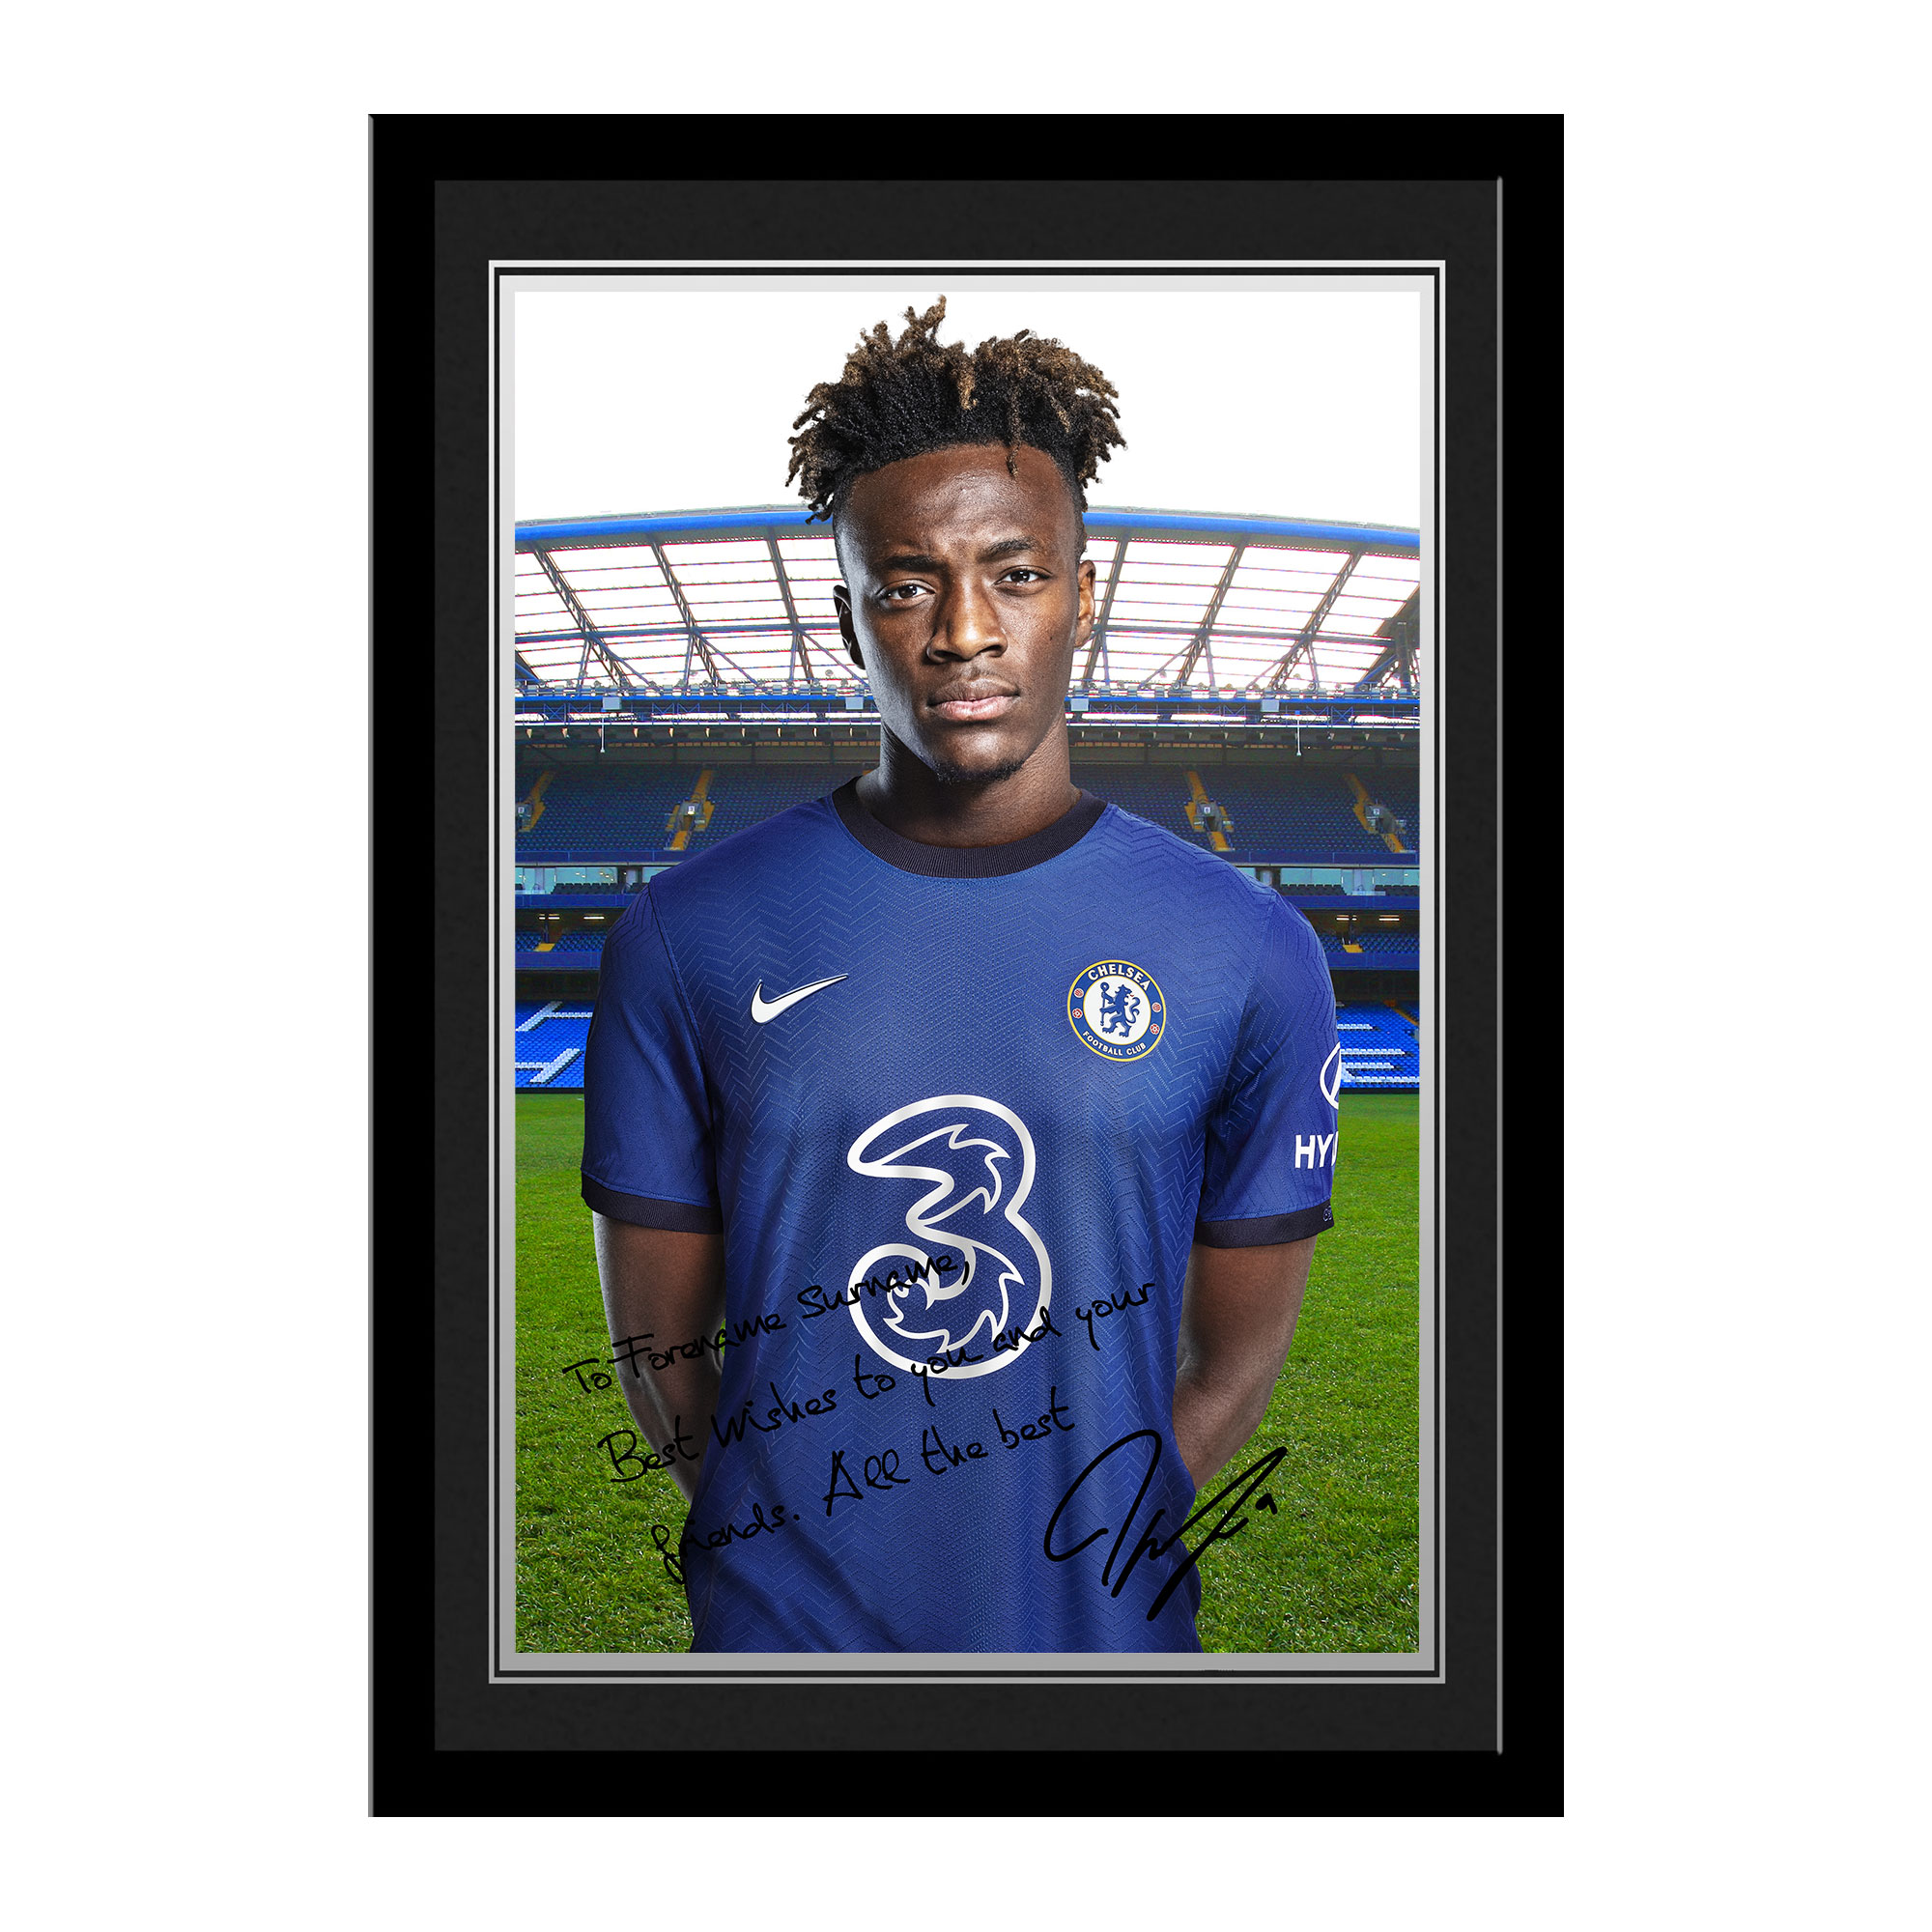 Chelsea FC Abraham Autograph Photo Framed